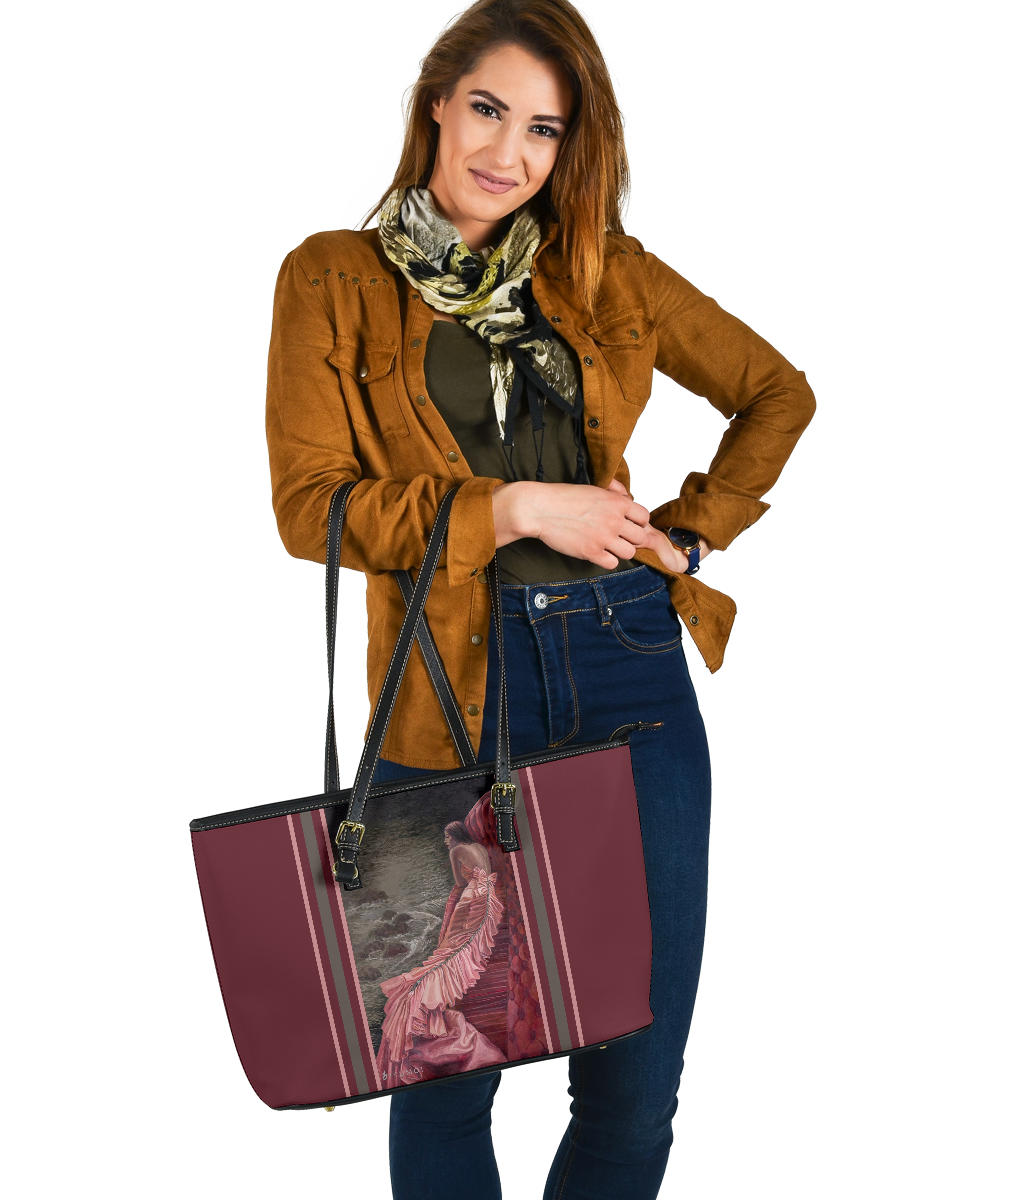 """Shrimp Taffeta"" Large PU Leather Tote (Includes Expedited Shipping) - S I S U M O I"